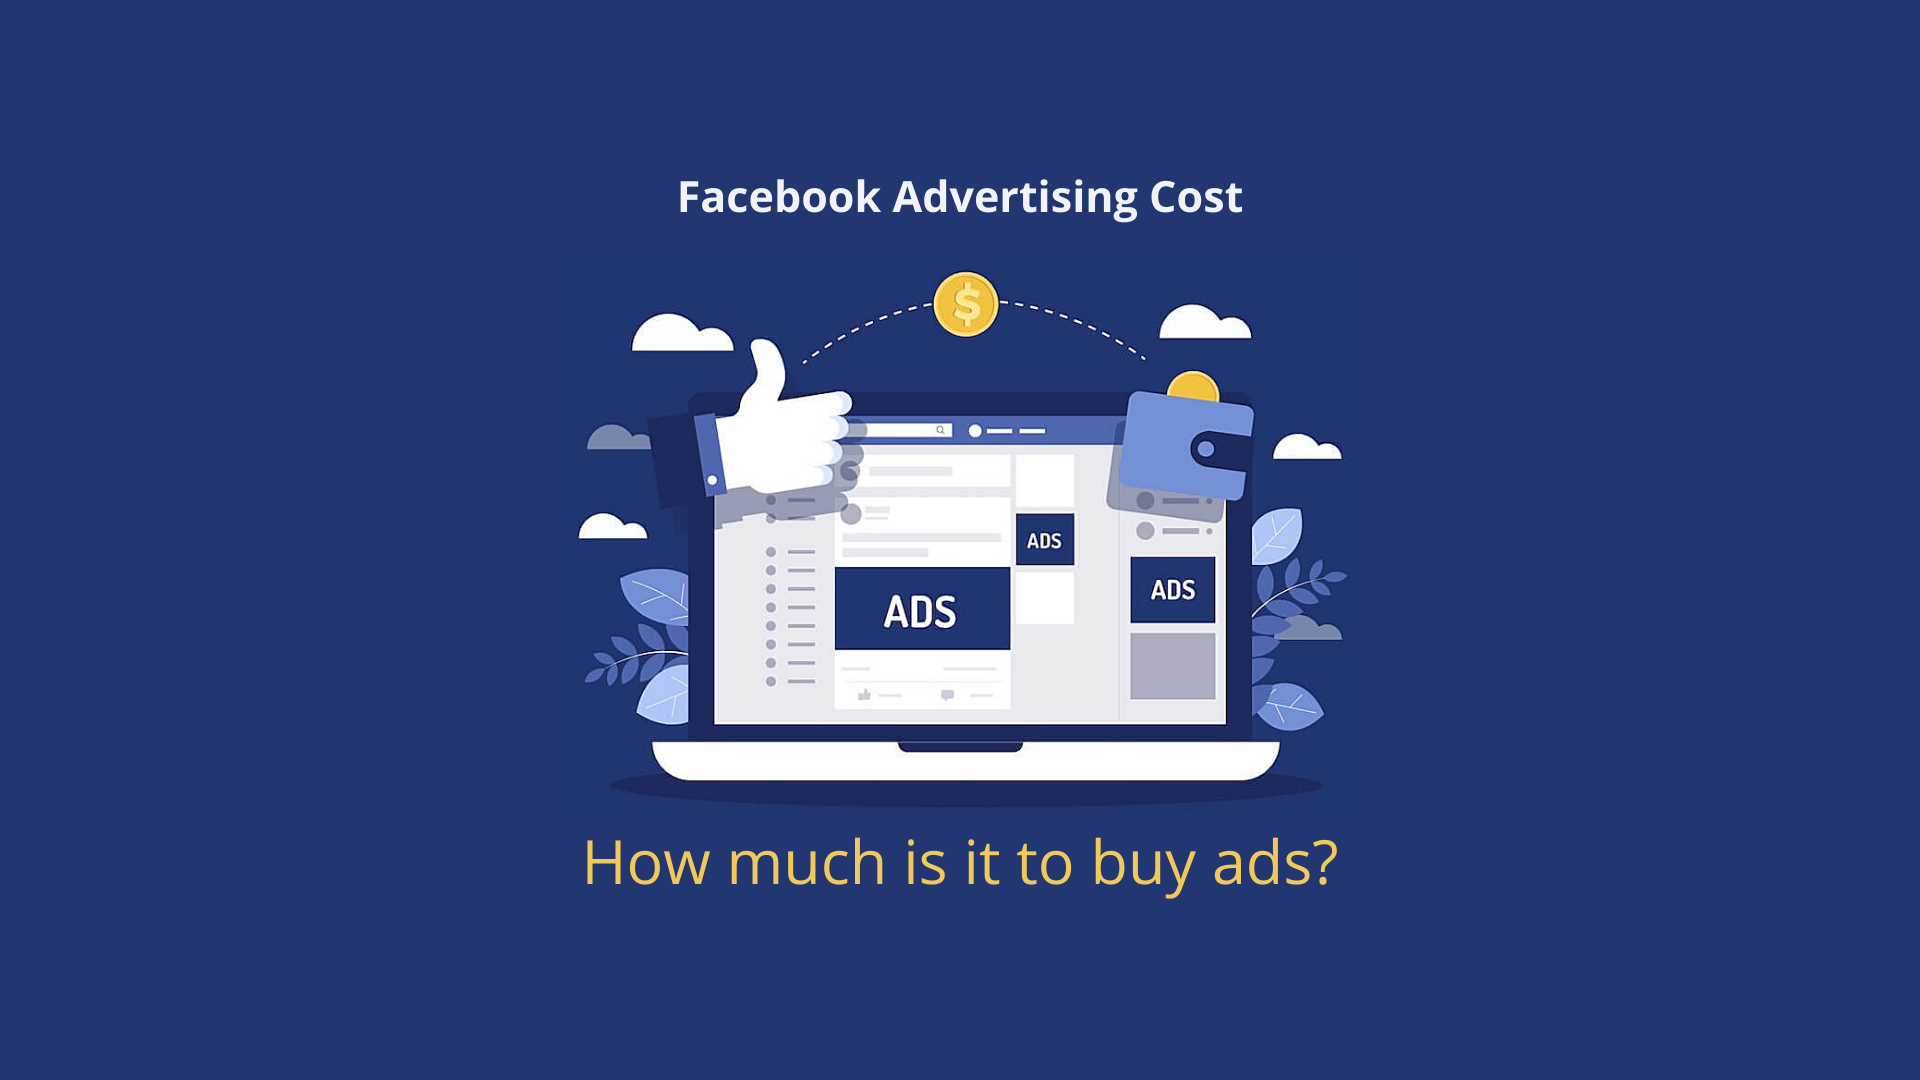 What Is Facebook Advertising Cost?